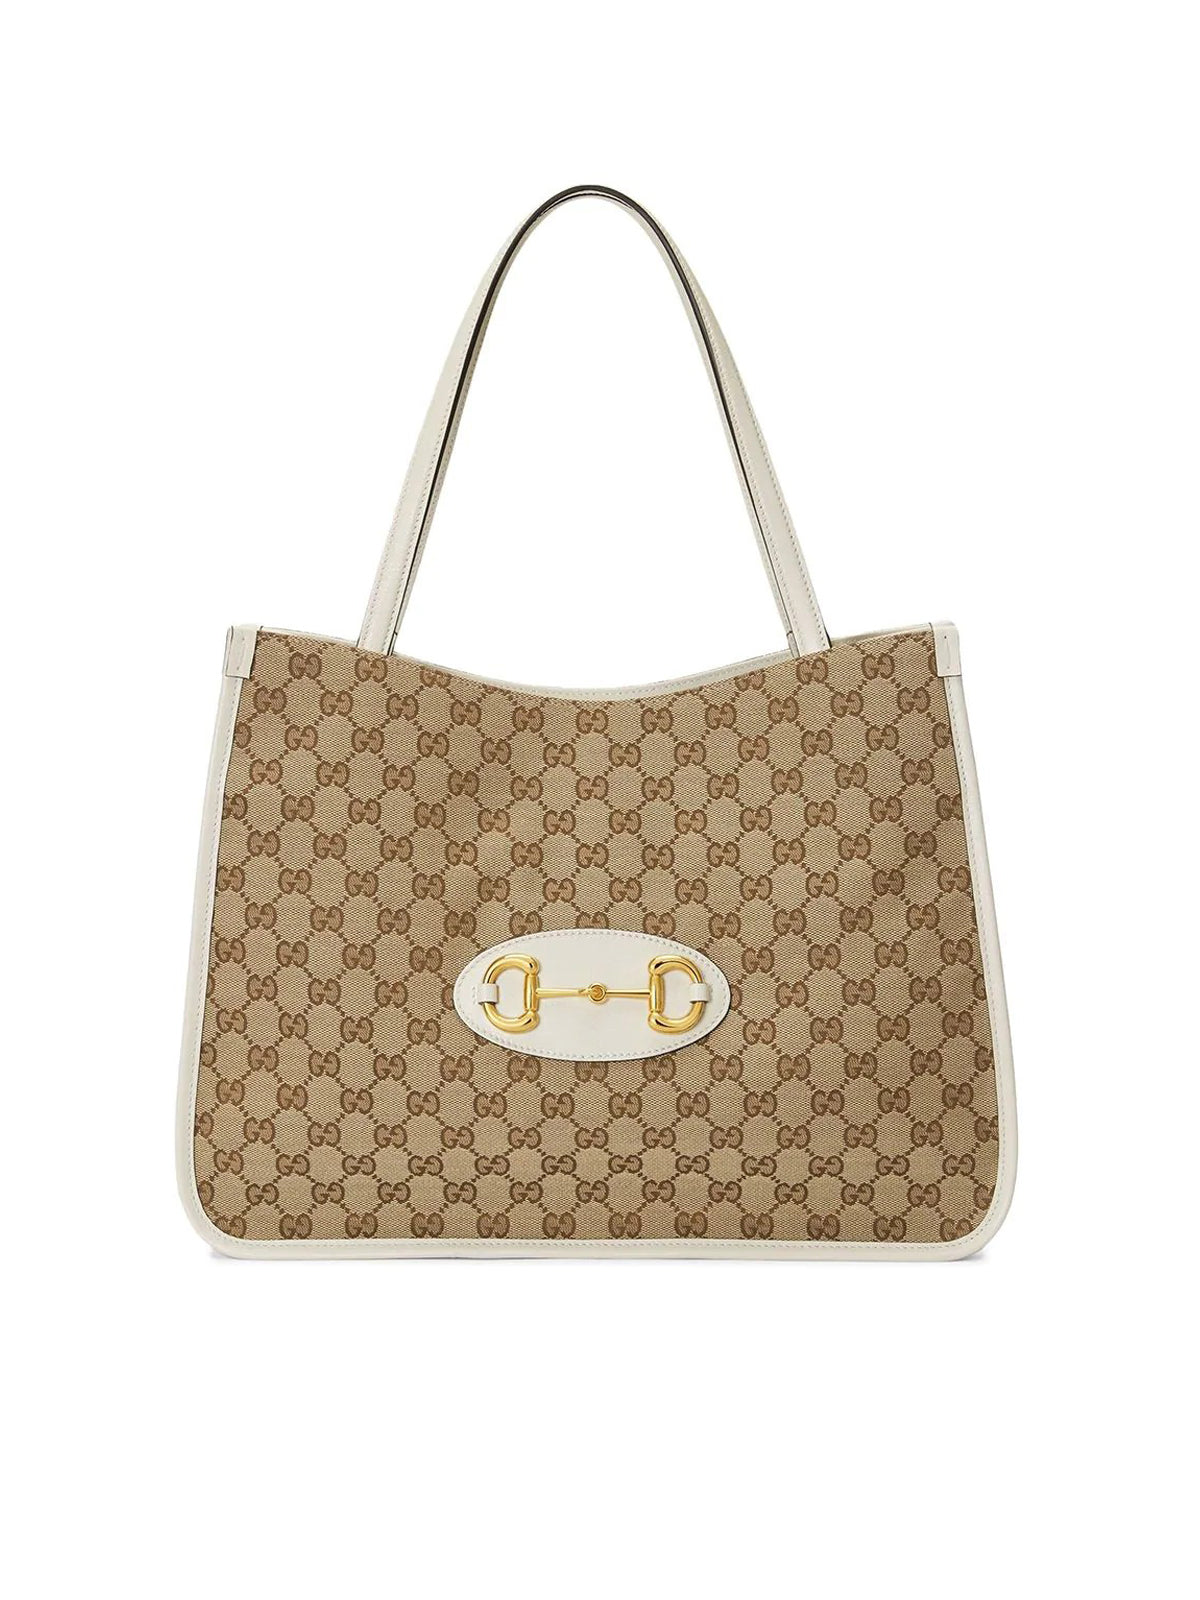 TOTE BAG HORSEBIT 1955